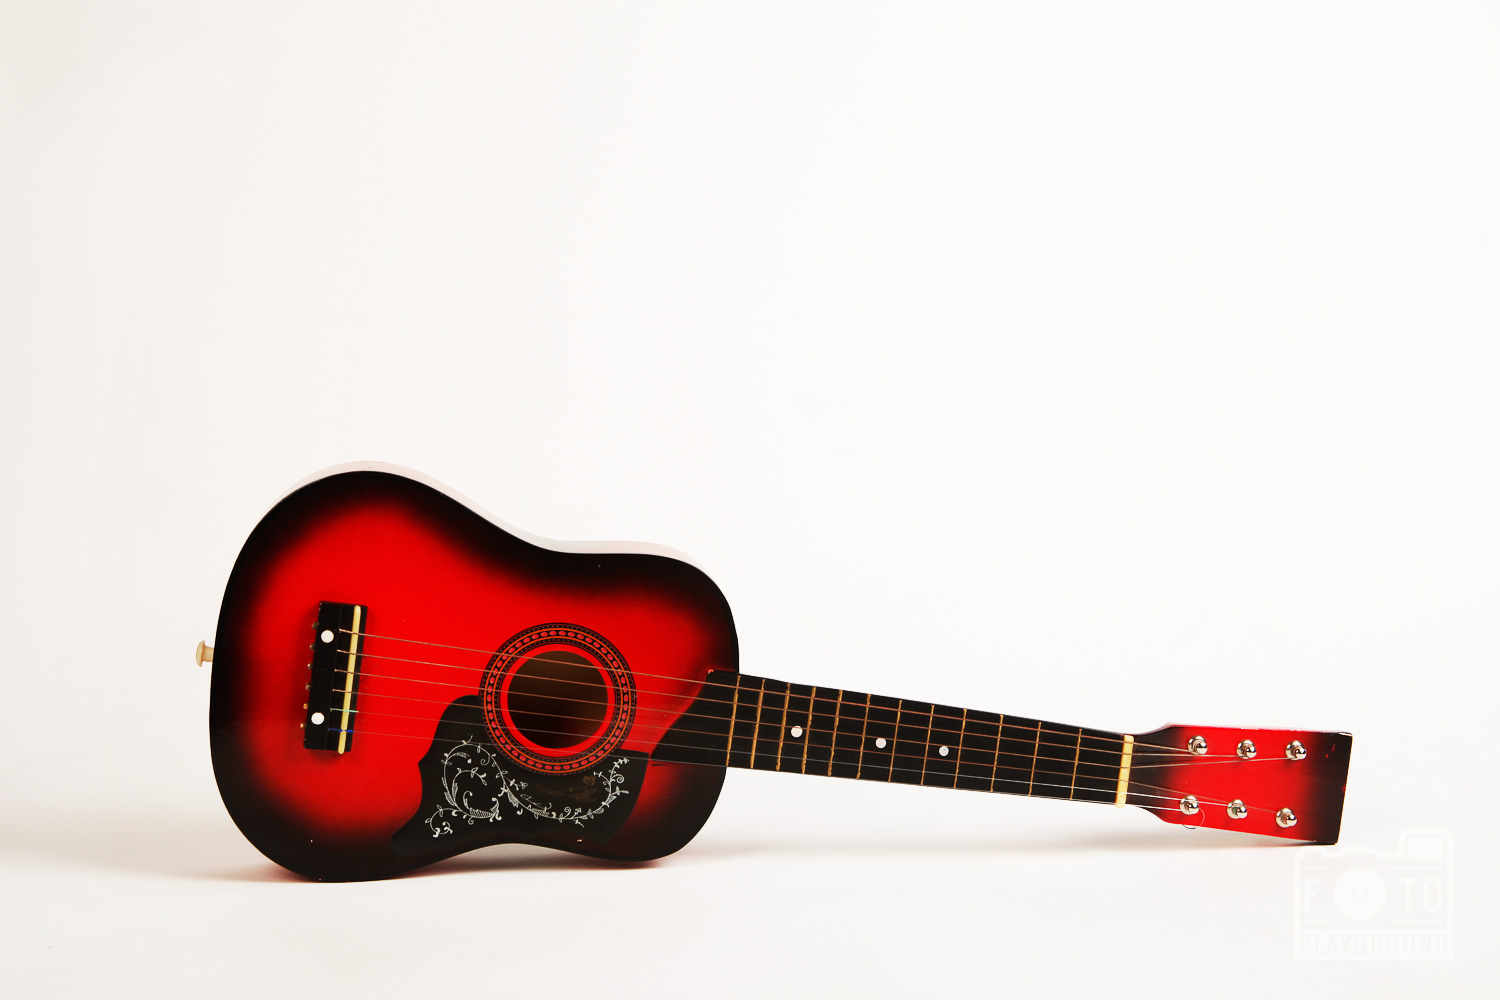 red guitar (1/2 size)